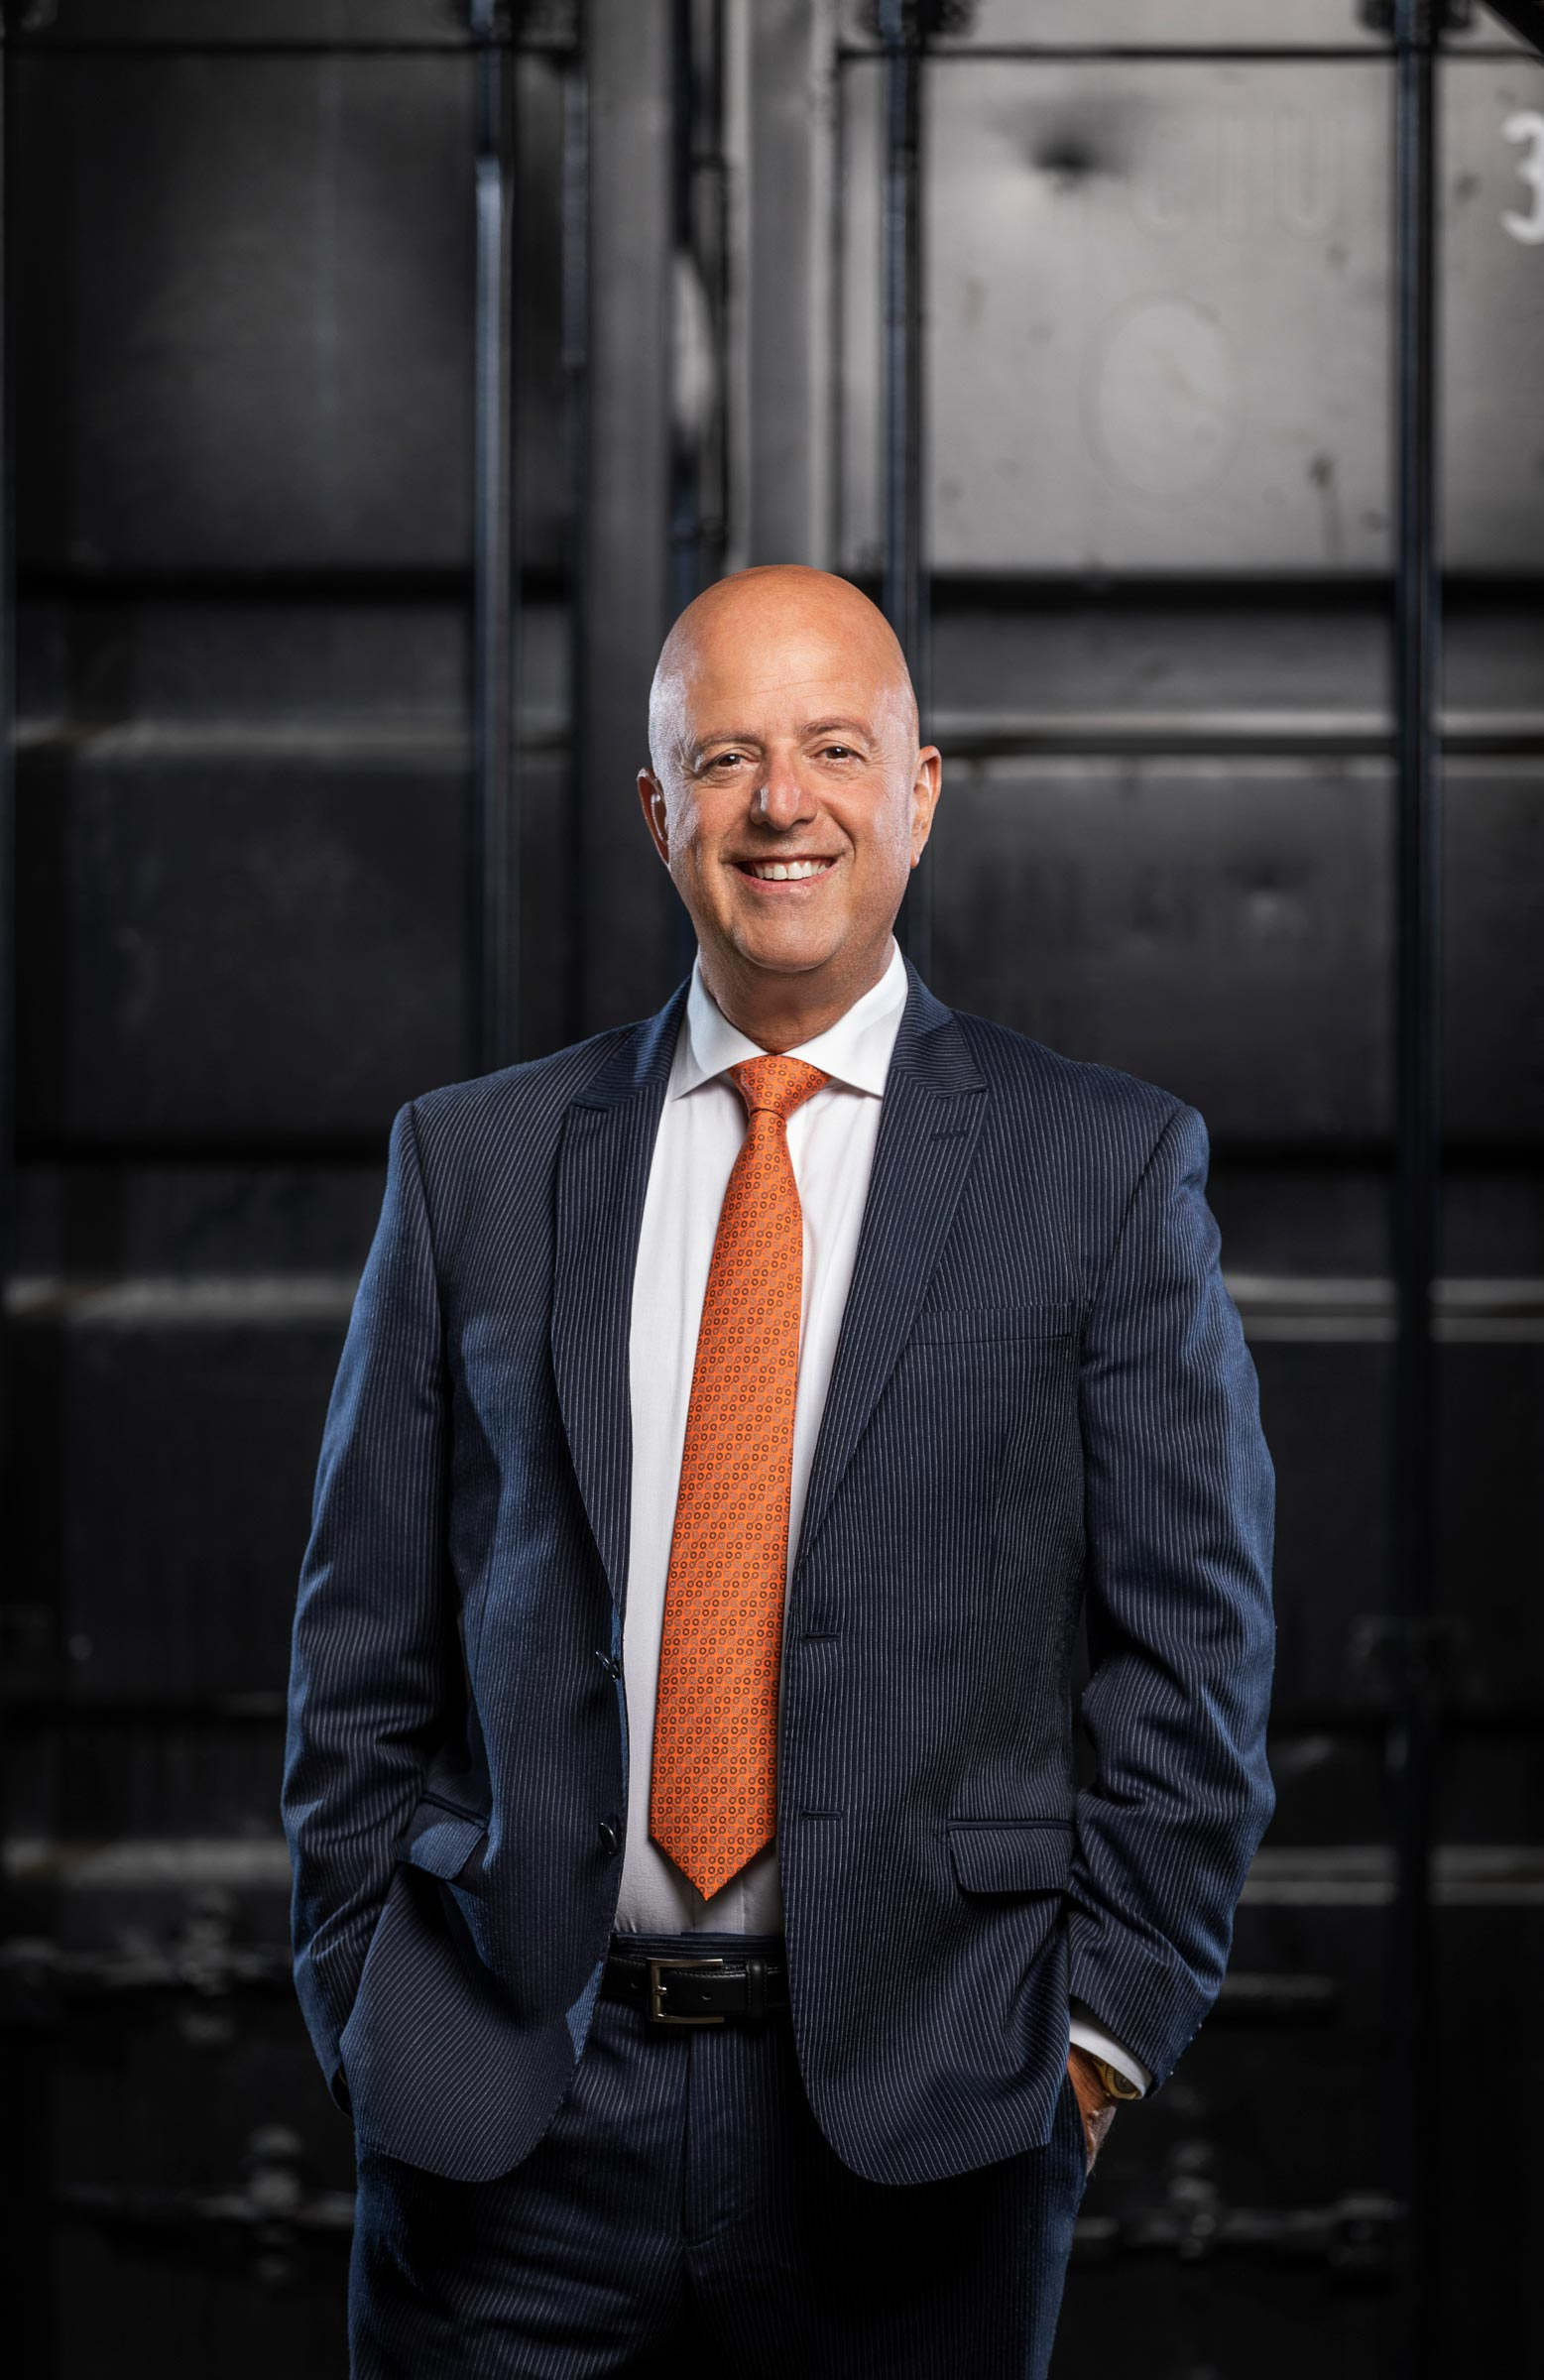 corporate male in suit with orange tie standing in front of shipping container